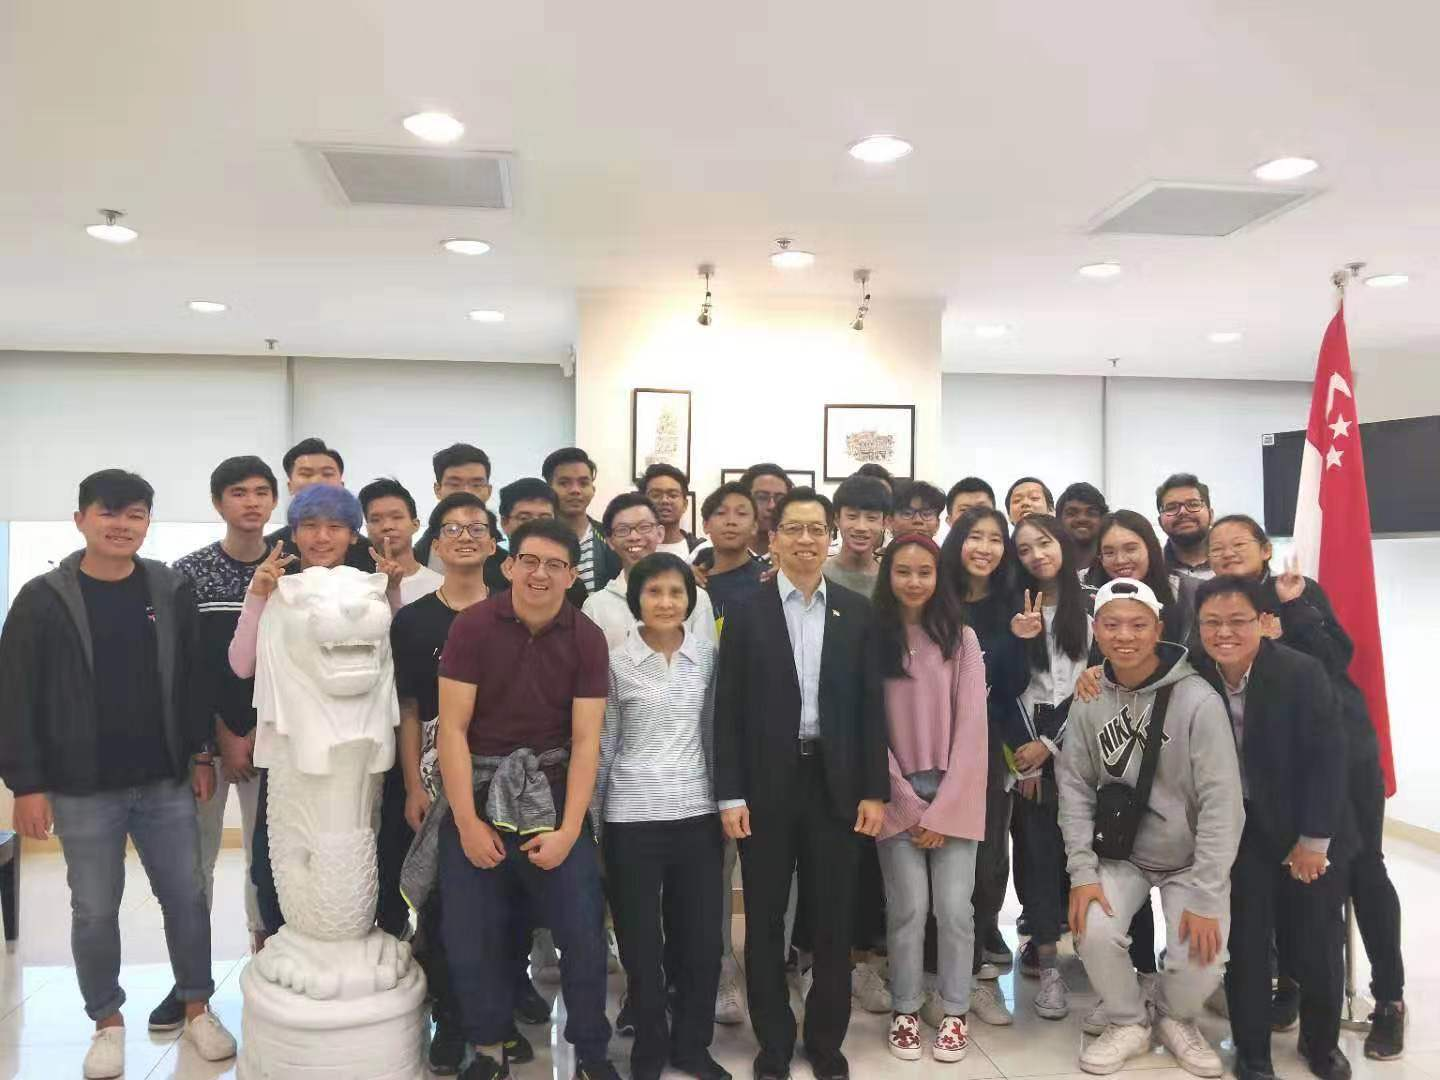 Ministry Of Foreign Affairs Singapore Visit By Students From Engineering School And Design School Of Temasek Polytechnic